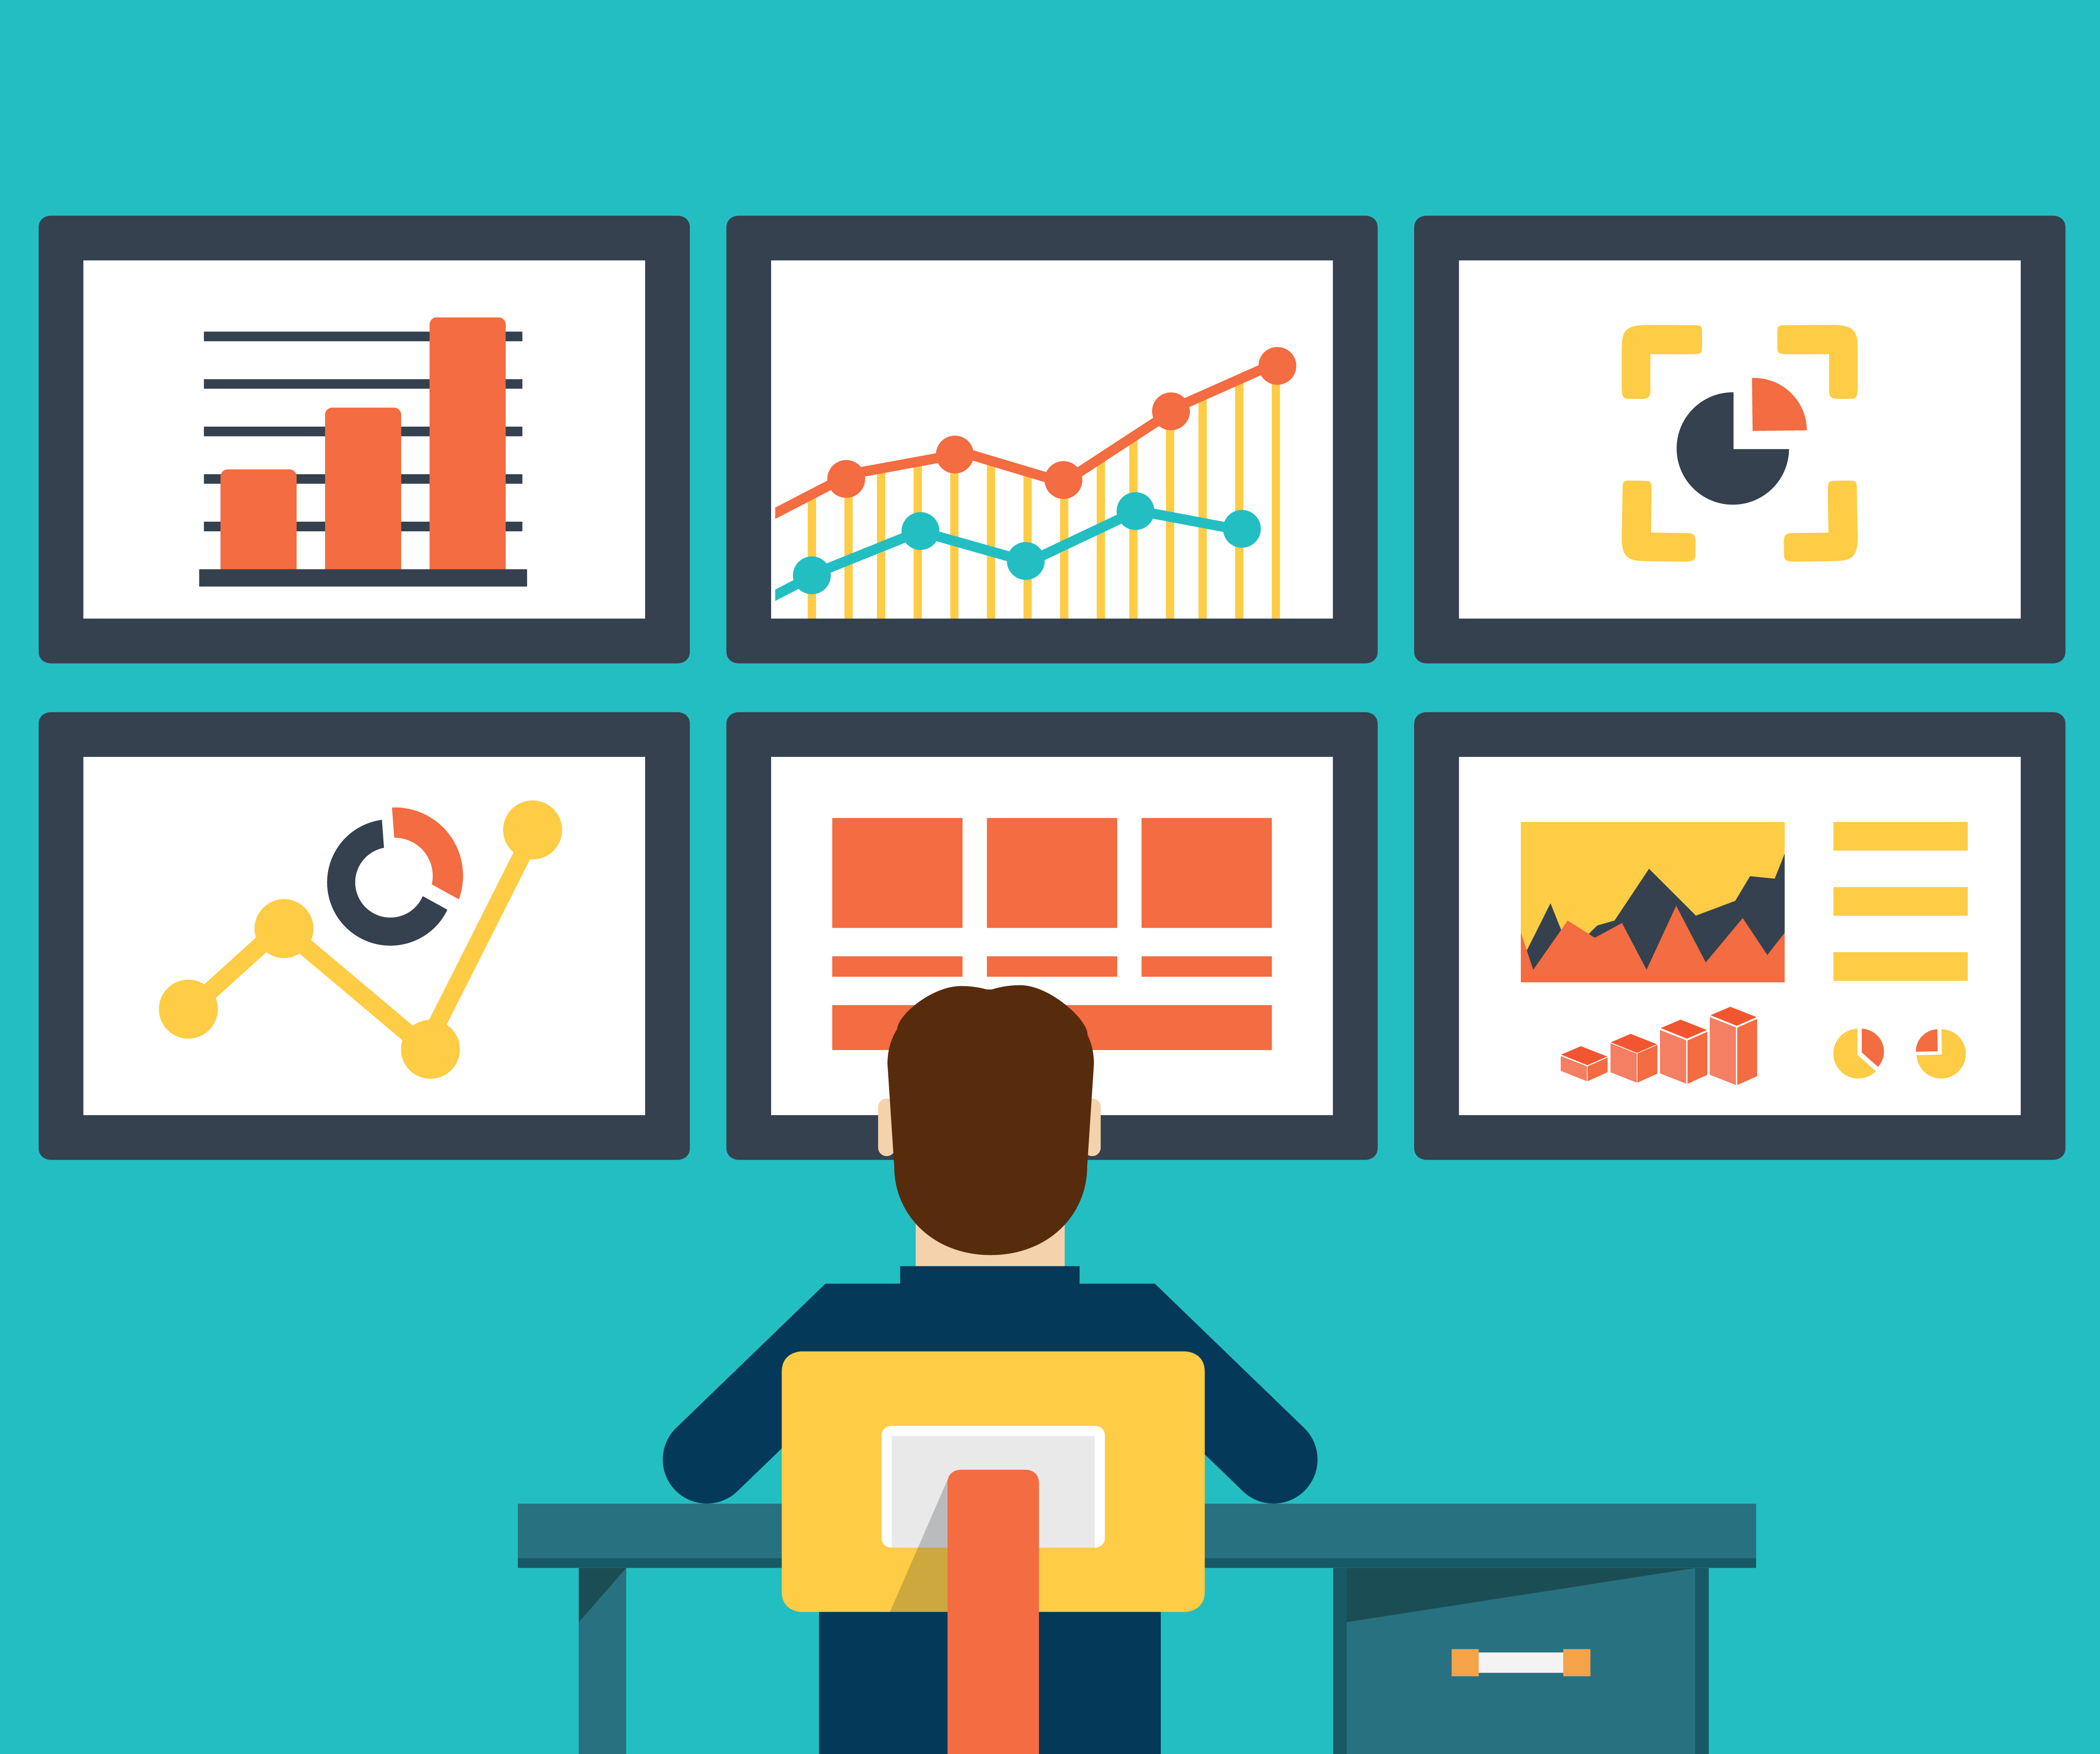 3 Key Things to Look at in Analytics (For Beginners)